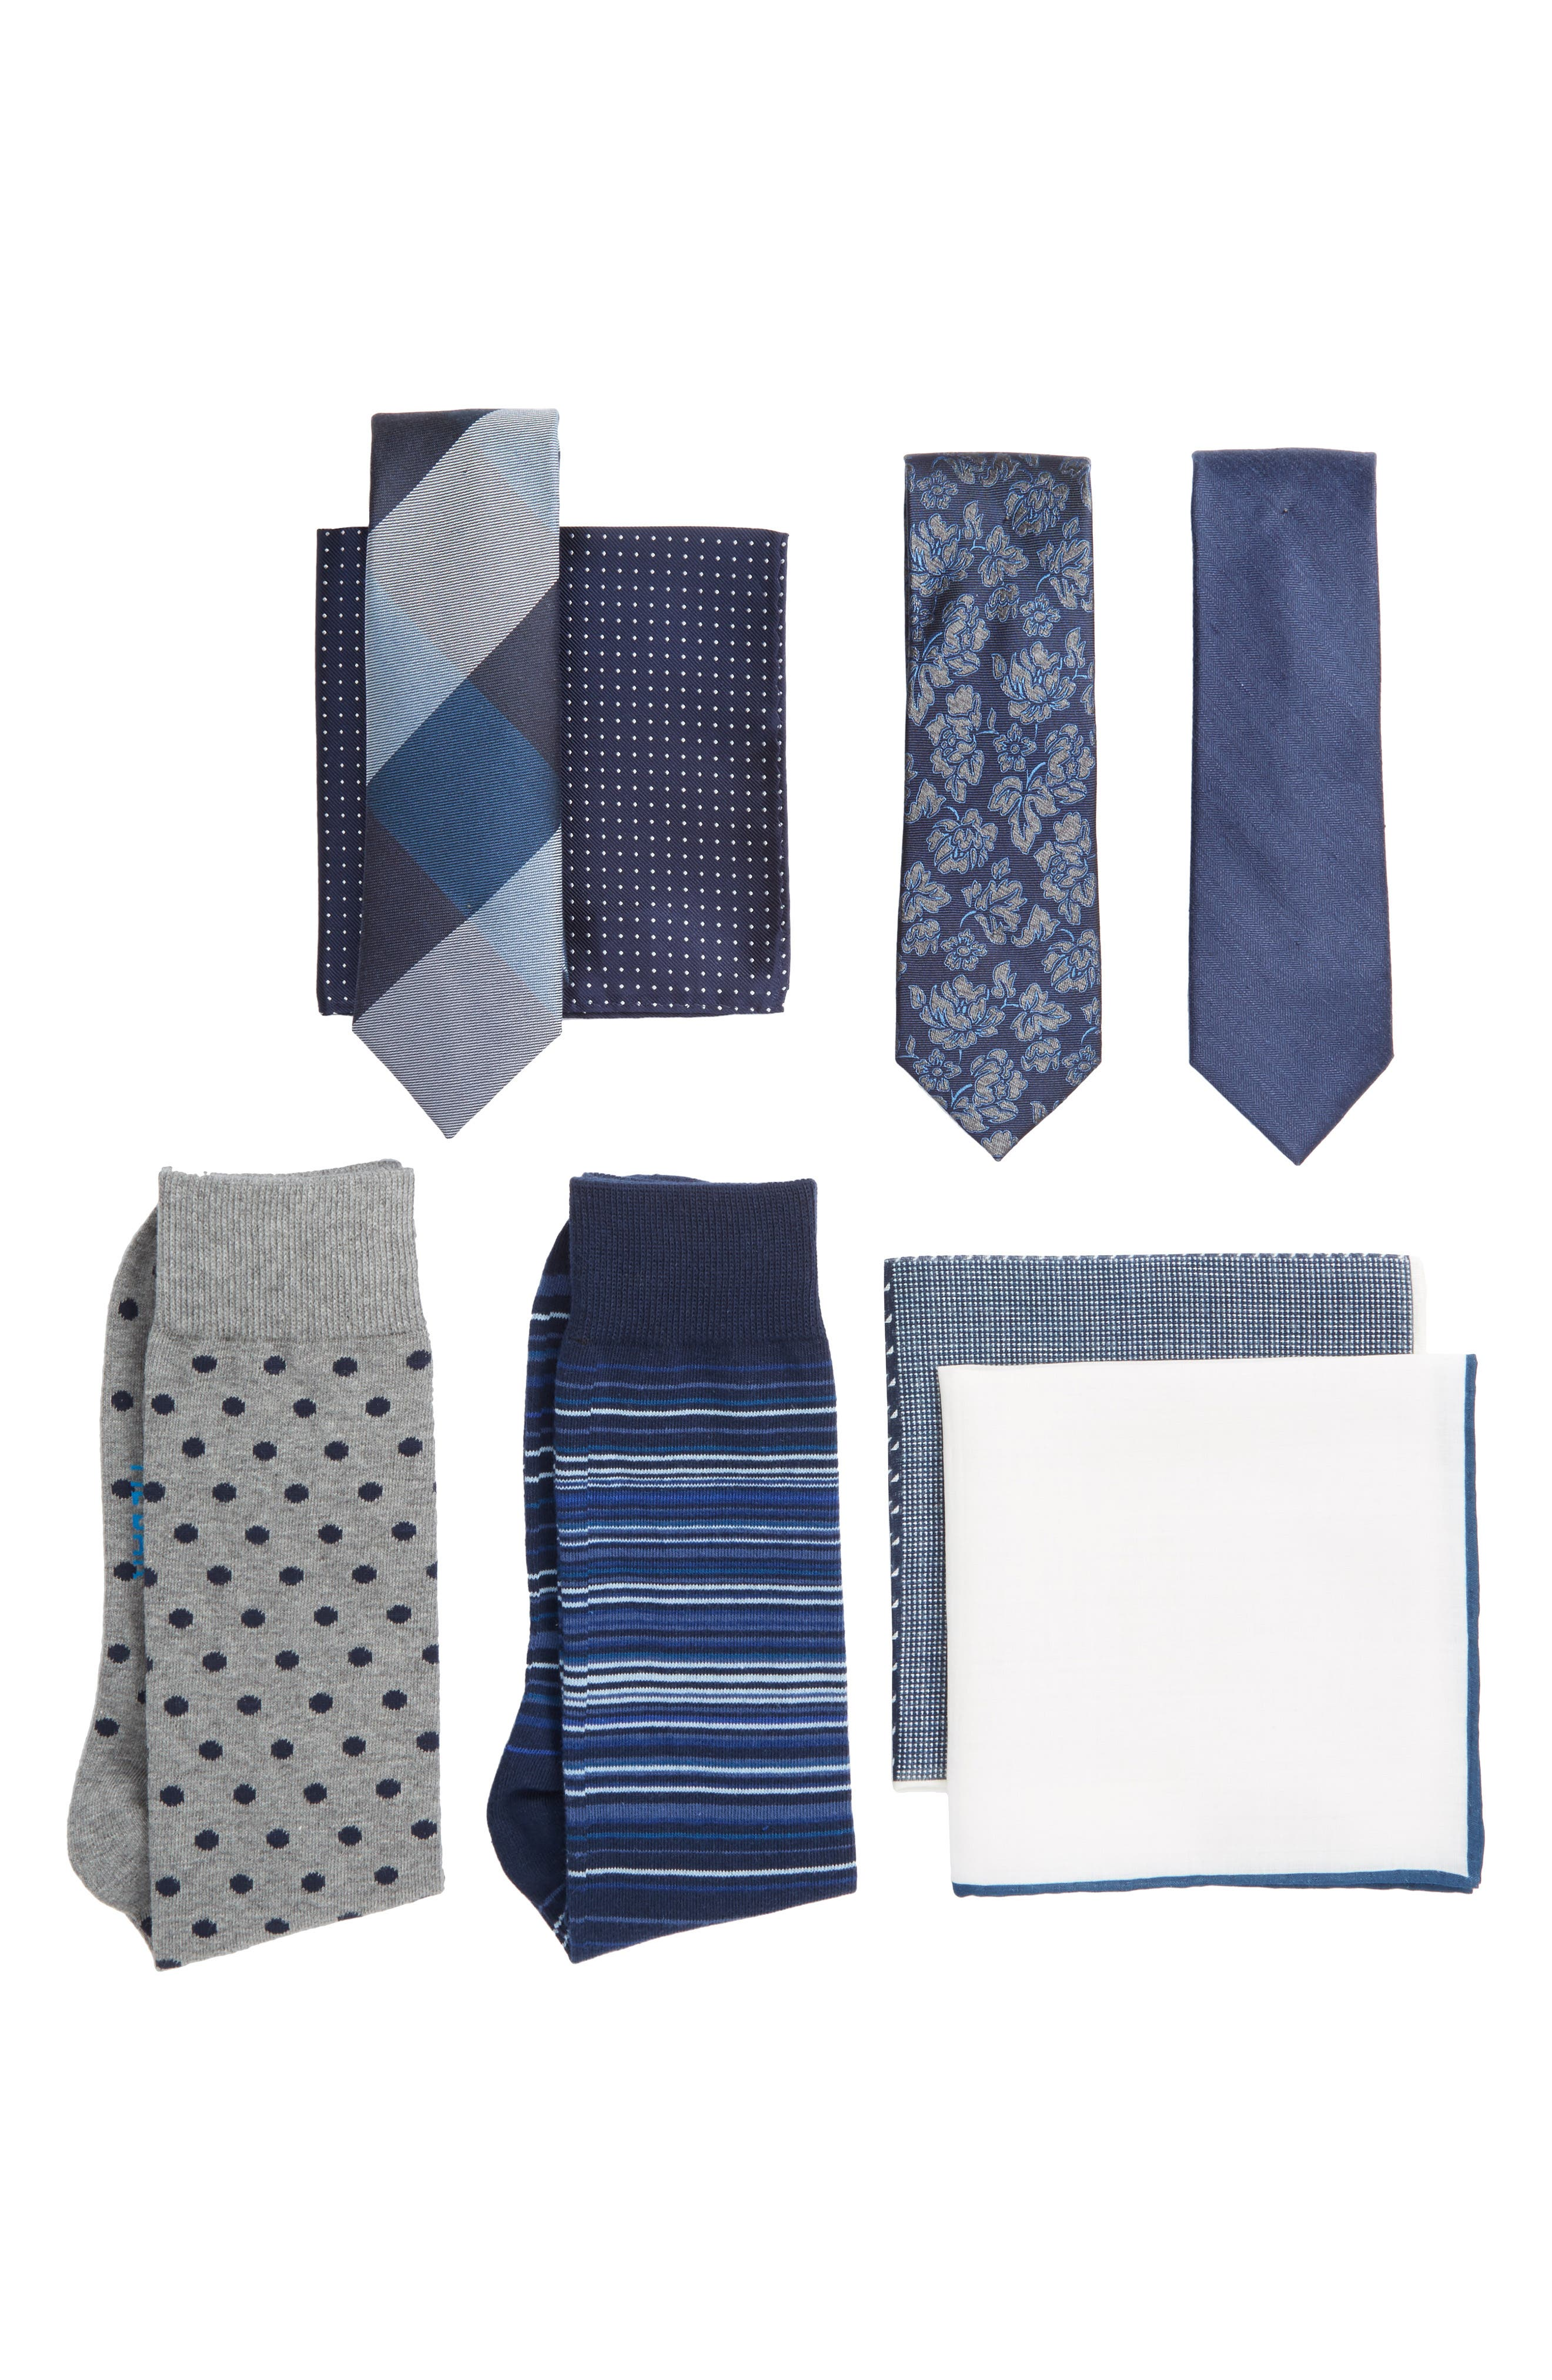 Main Image - The Tie Bar Large Style Box